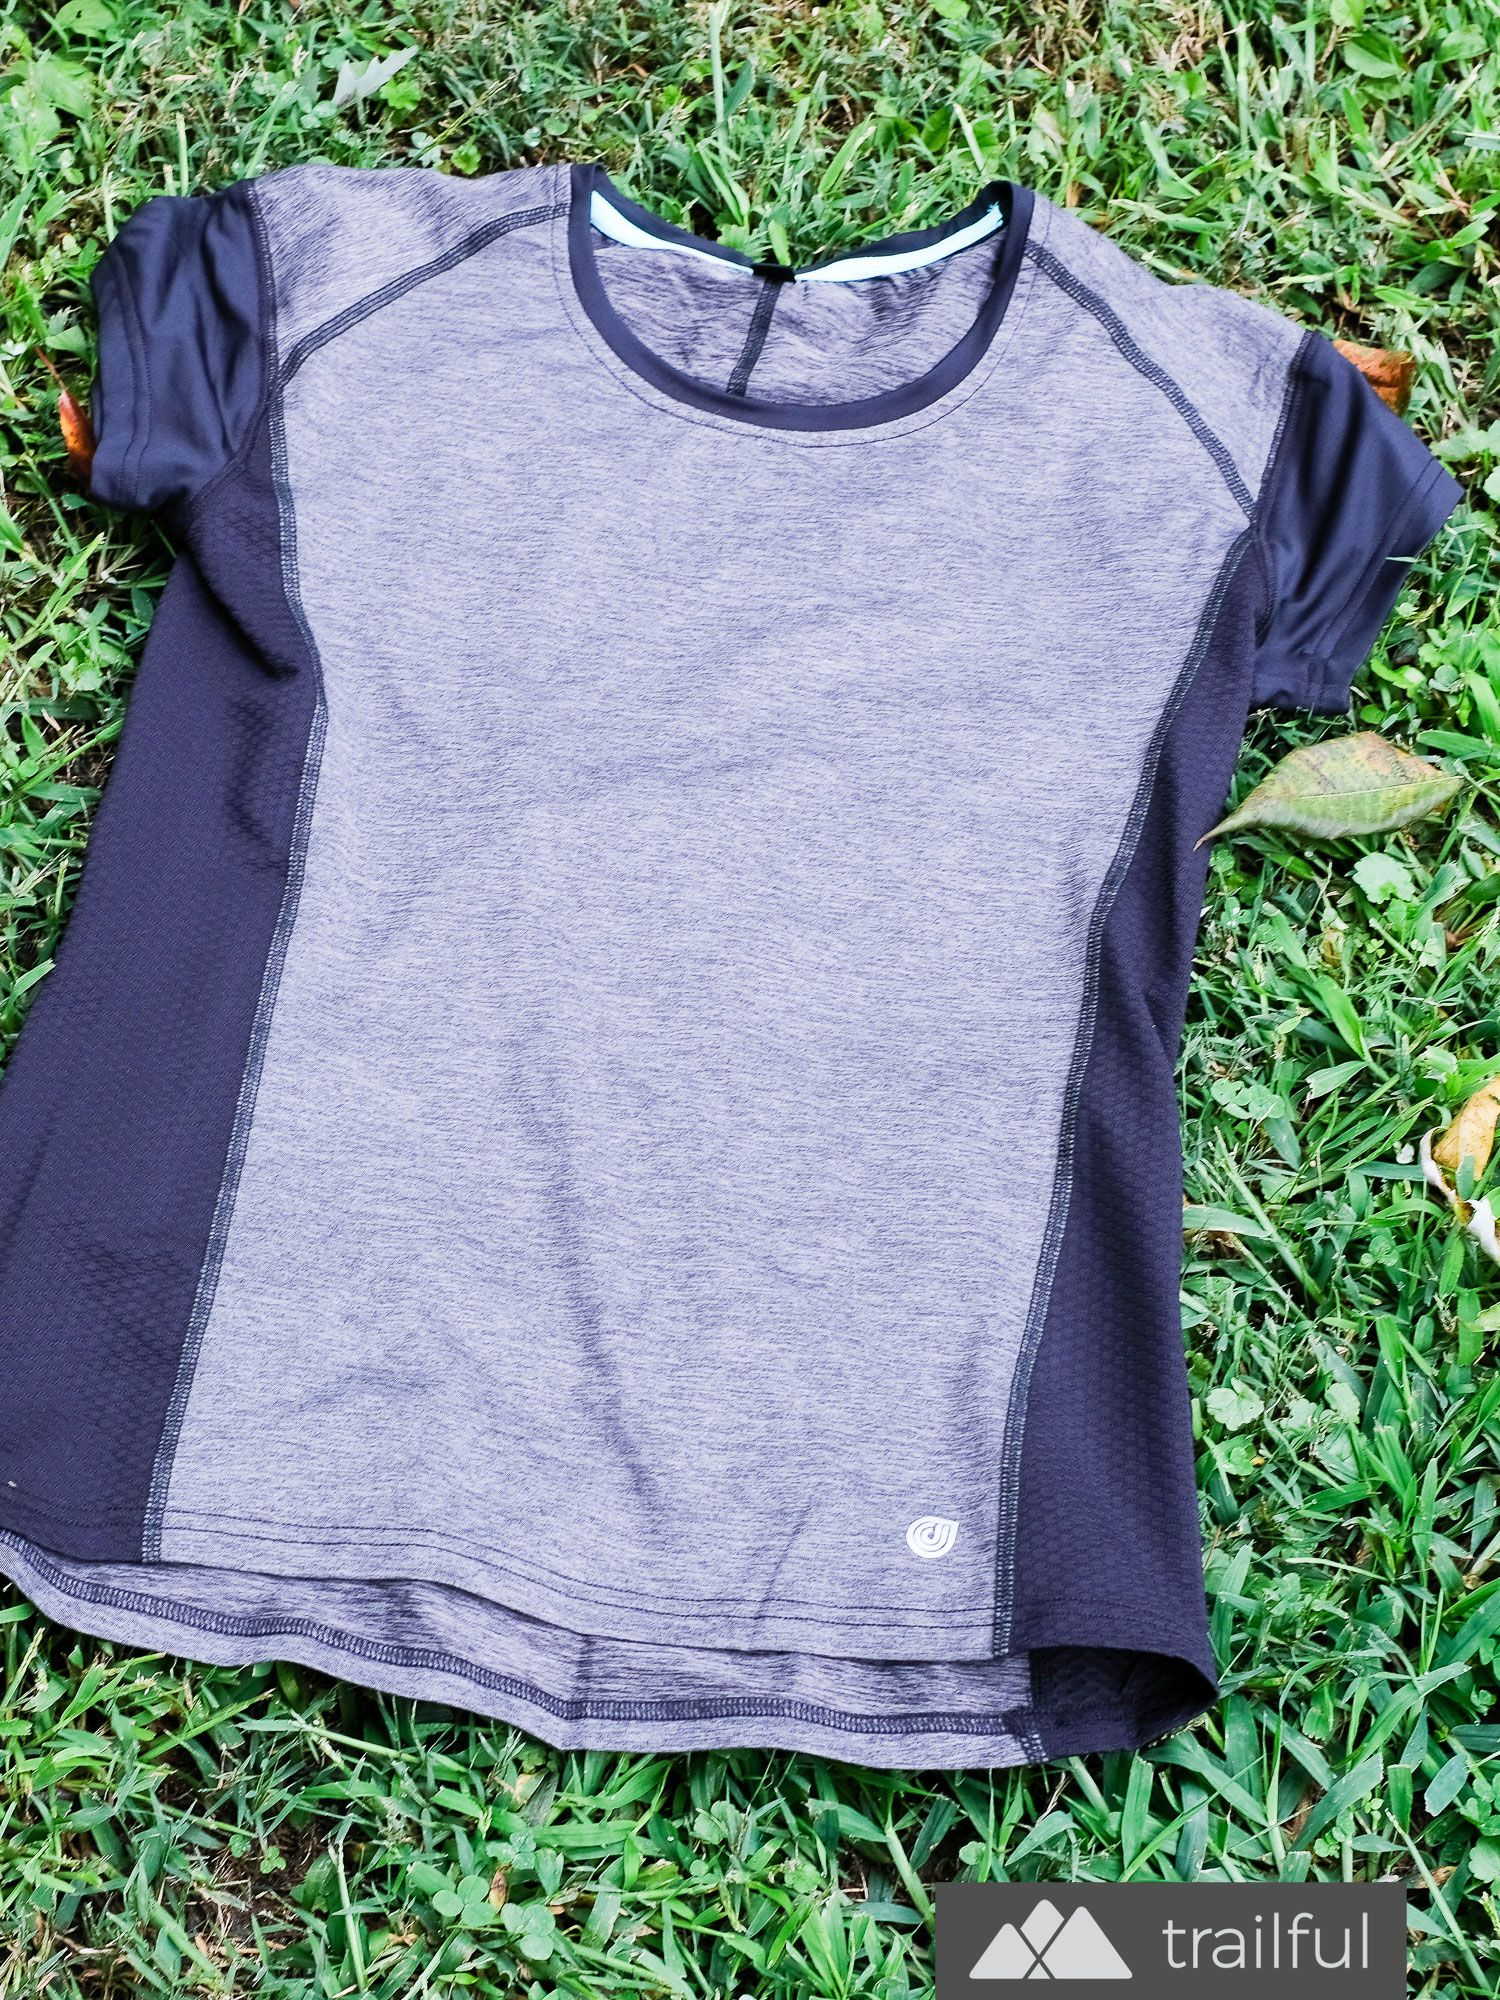 Coolcore cooling running shorts & shirts review Running